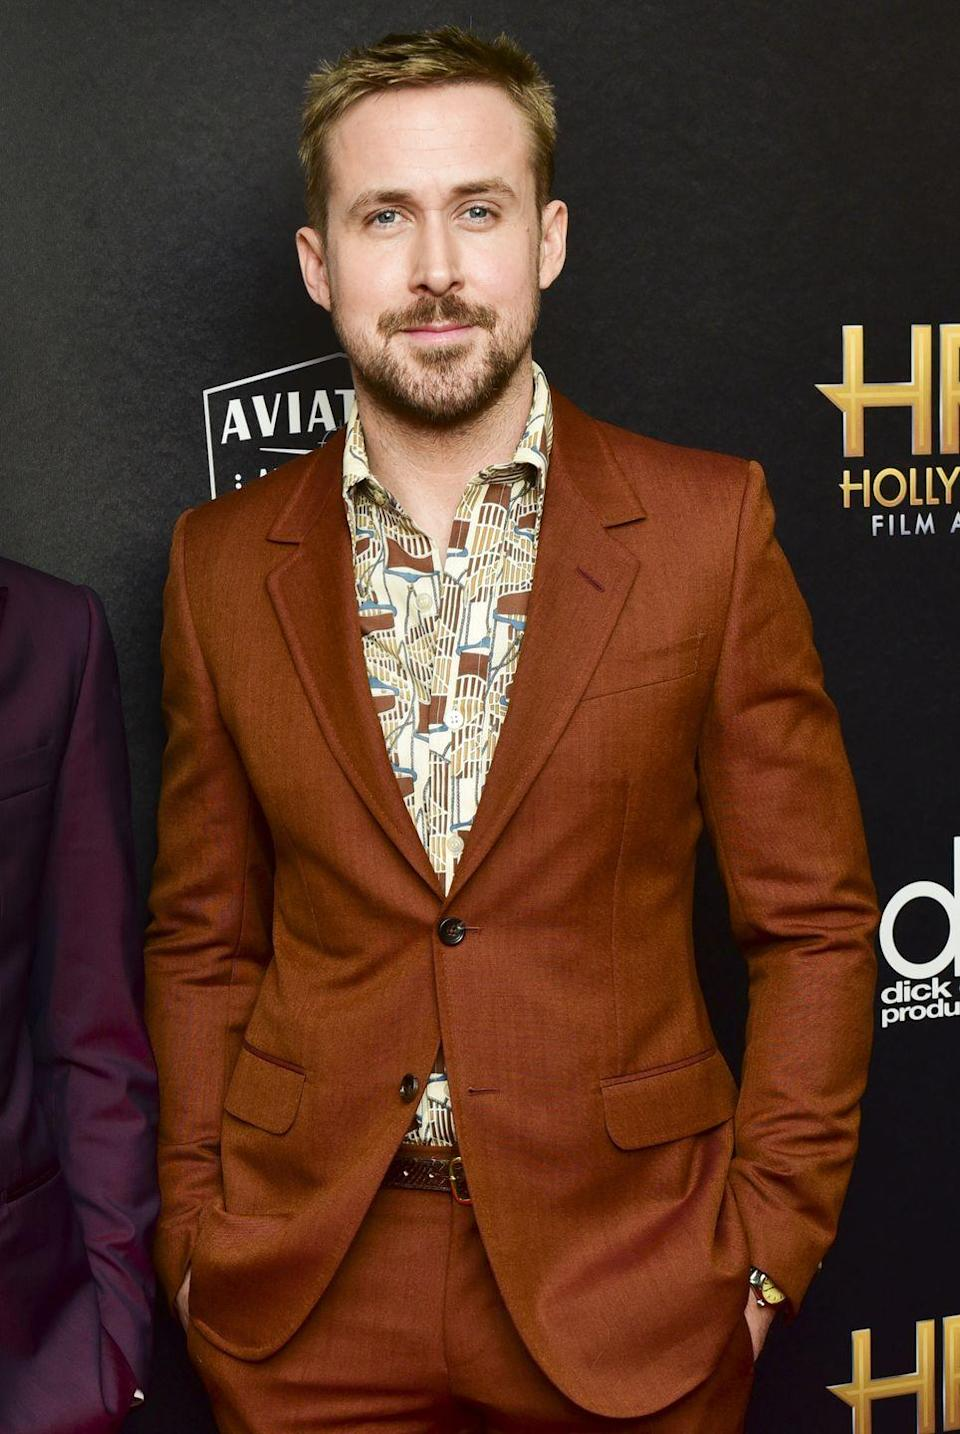 "<p>Now: From The Notebook to Gangster Squad to La La Land, Gosling has had a <a href=""https://www.imdb.com/name/nm0331516/?ref_=tt_cl_t7"" rel=""nofollow noopener"" target=""_blank"" data-ylk=""slk:varied and vast film career"" class=""link rapid-noclick-resp"">varied and vast film career</a> that spans almost 25 years. He is a Golden Globe winner with more than 20 acting awards under his belt, and has been named one of the<a href=""https://www.forbes.com/pictures/599b0ba431358e60d7768f66/14-ryan-gosling/#ef7376517638"" rel=""nofollow noopener"" target=""_blank"" data-ylk=""slk:highest-paid actors in the world"" class=""link rapid-noclick-resp""> highest-paid actors in the world</a>.</p>"